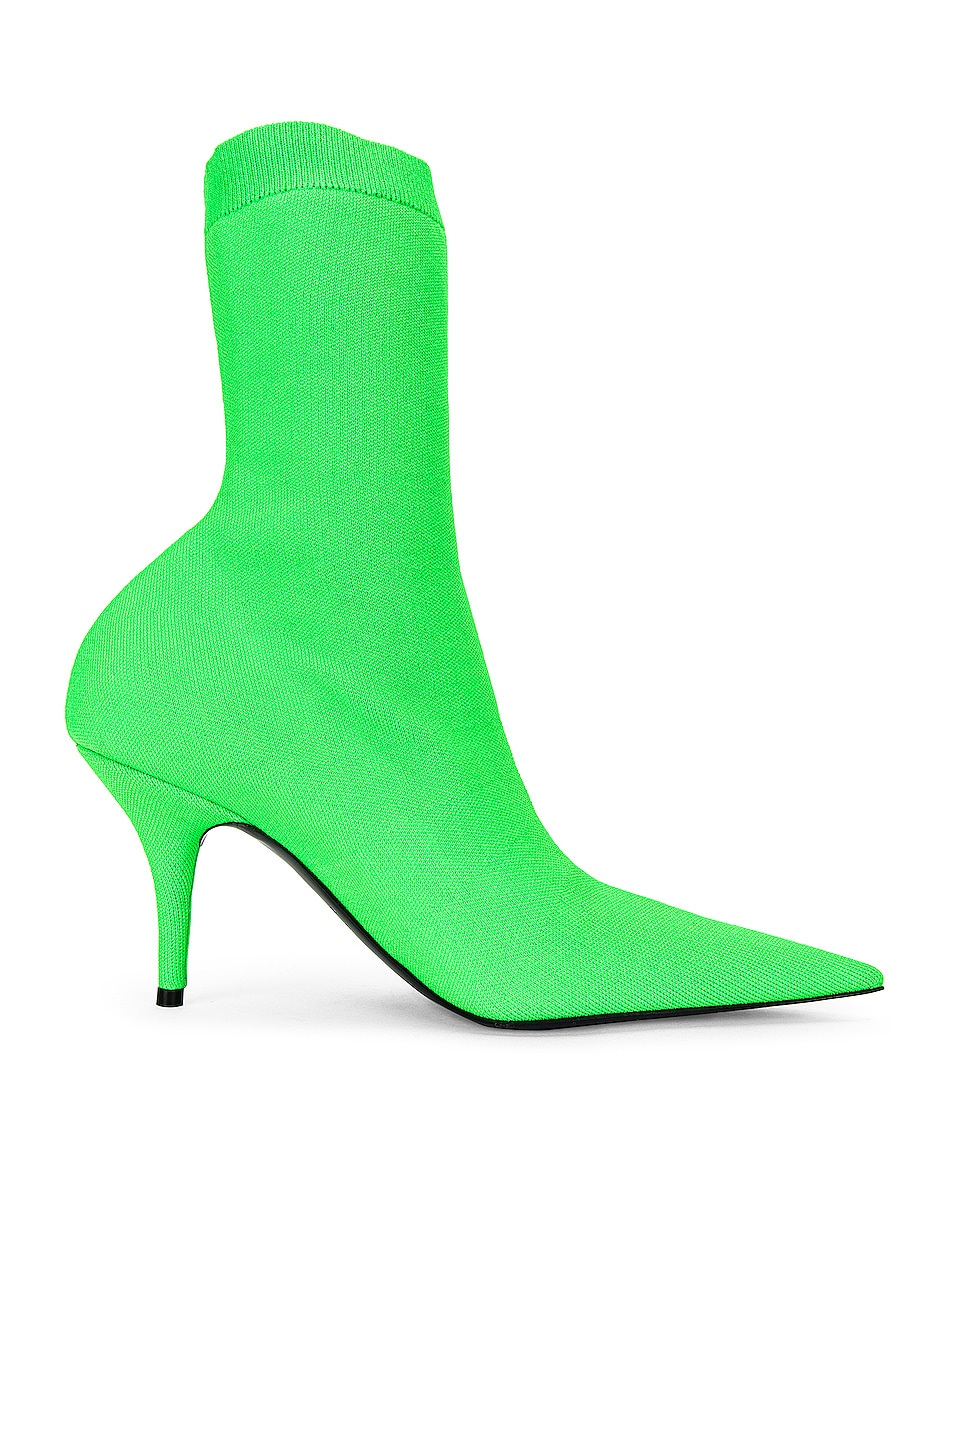 Image 1 of Balenciaga Knife Knit Booties in Fluo Green & Black